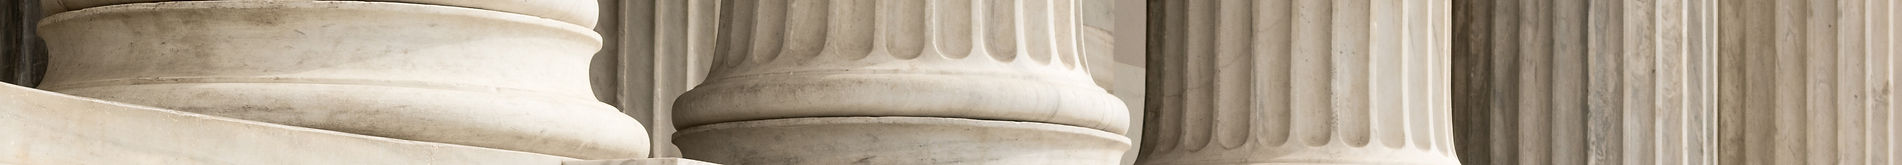 Architectural detail of marble steps and